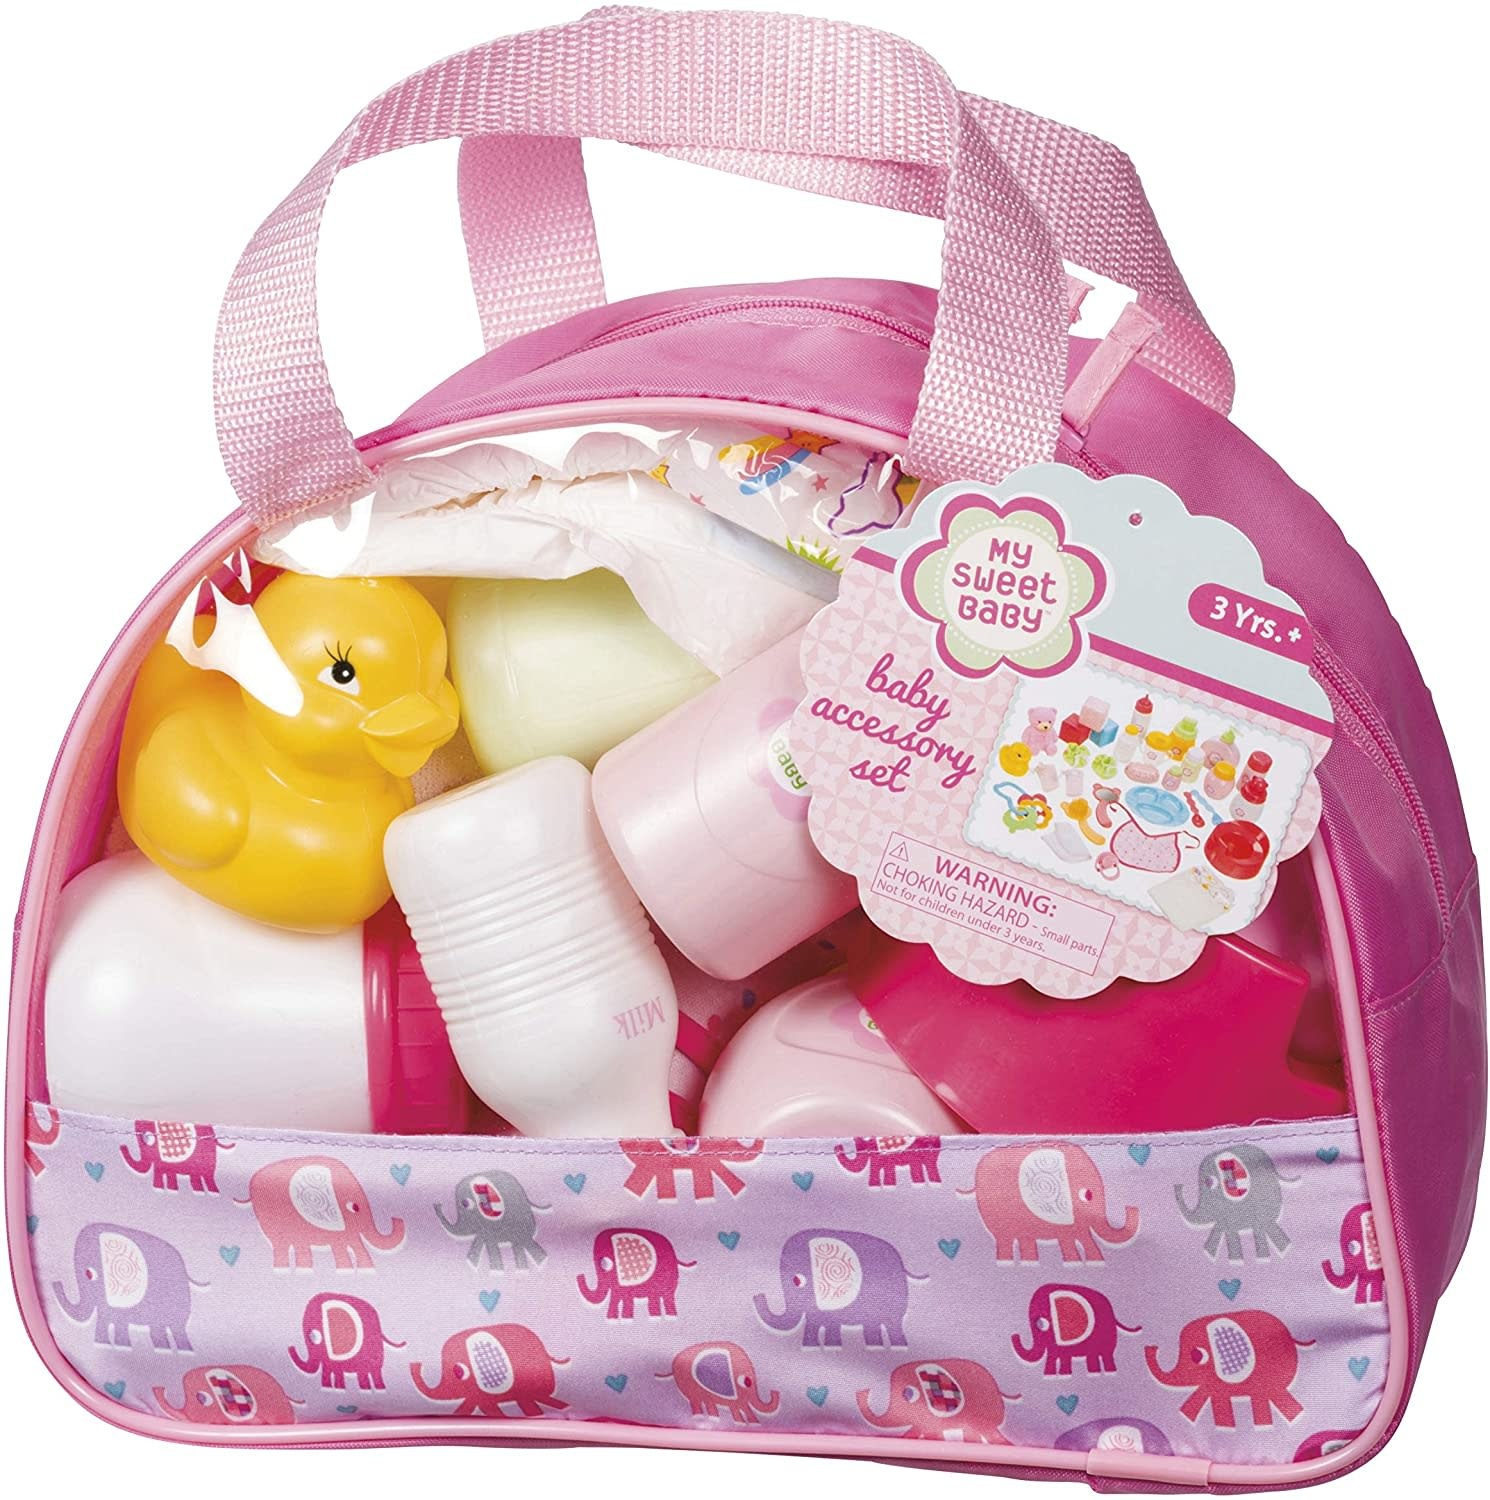 Baby Accessory Set by Toysmith